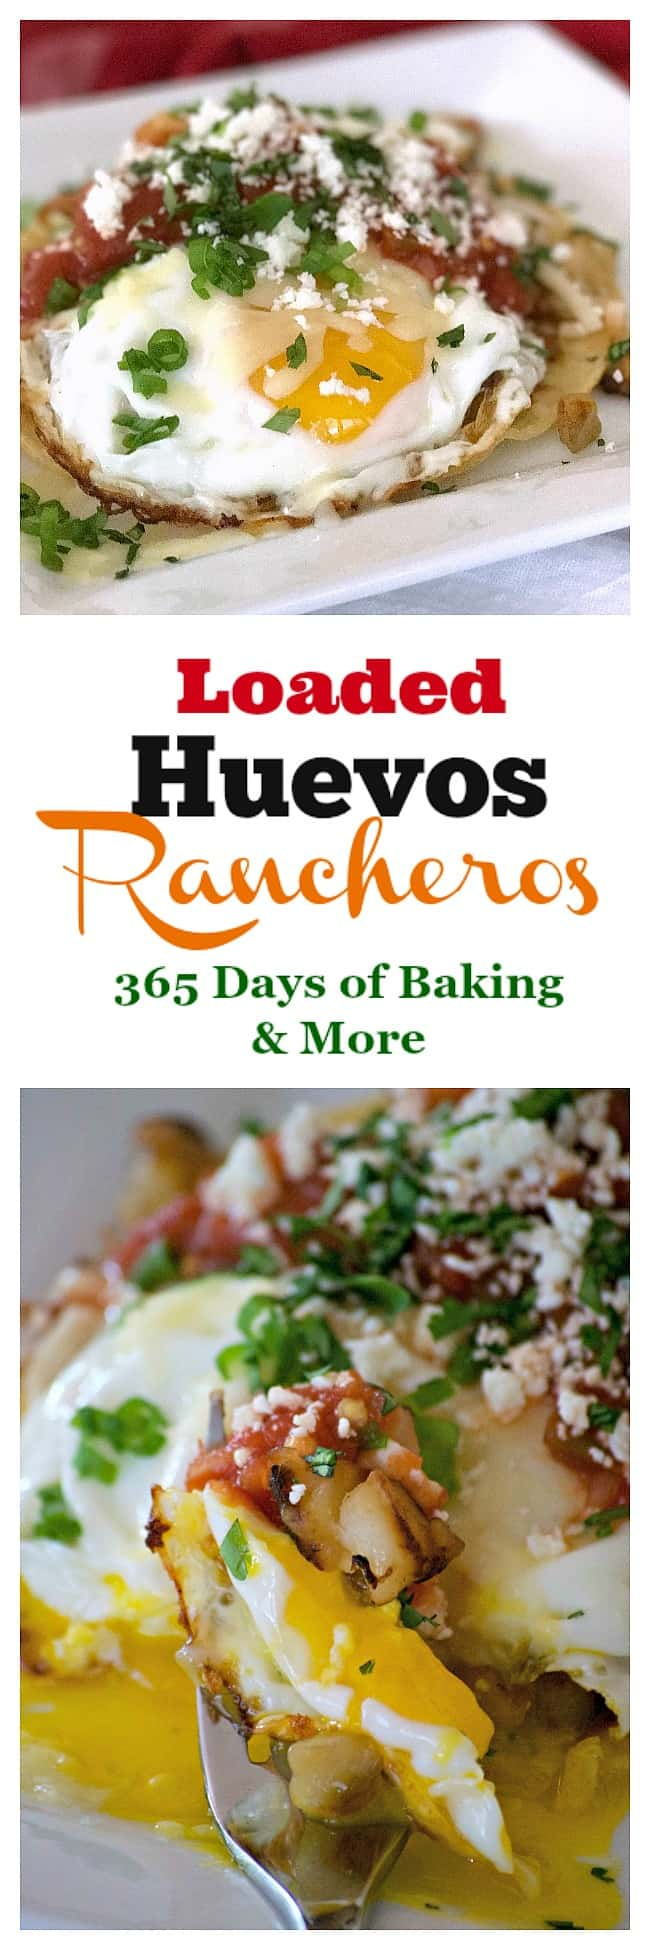 Loaded Huevos Rancheros are tortillas topped with refried beans, Potatoes O'Brien, salsa, eggs and cheese - a hearty breakfast that's full of great flavor!